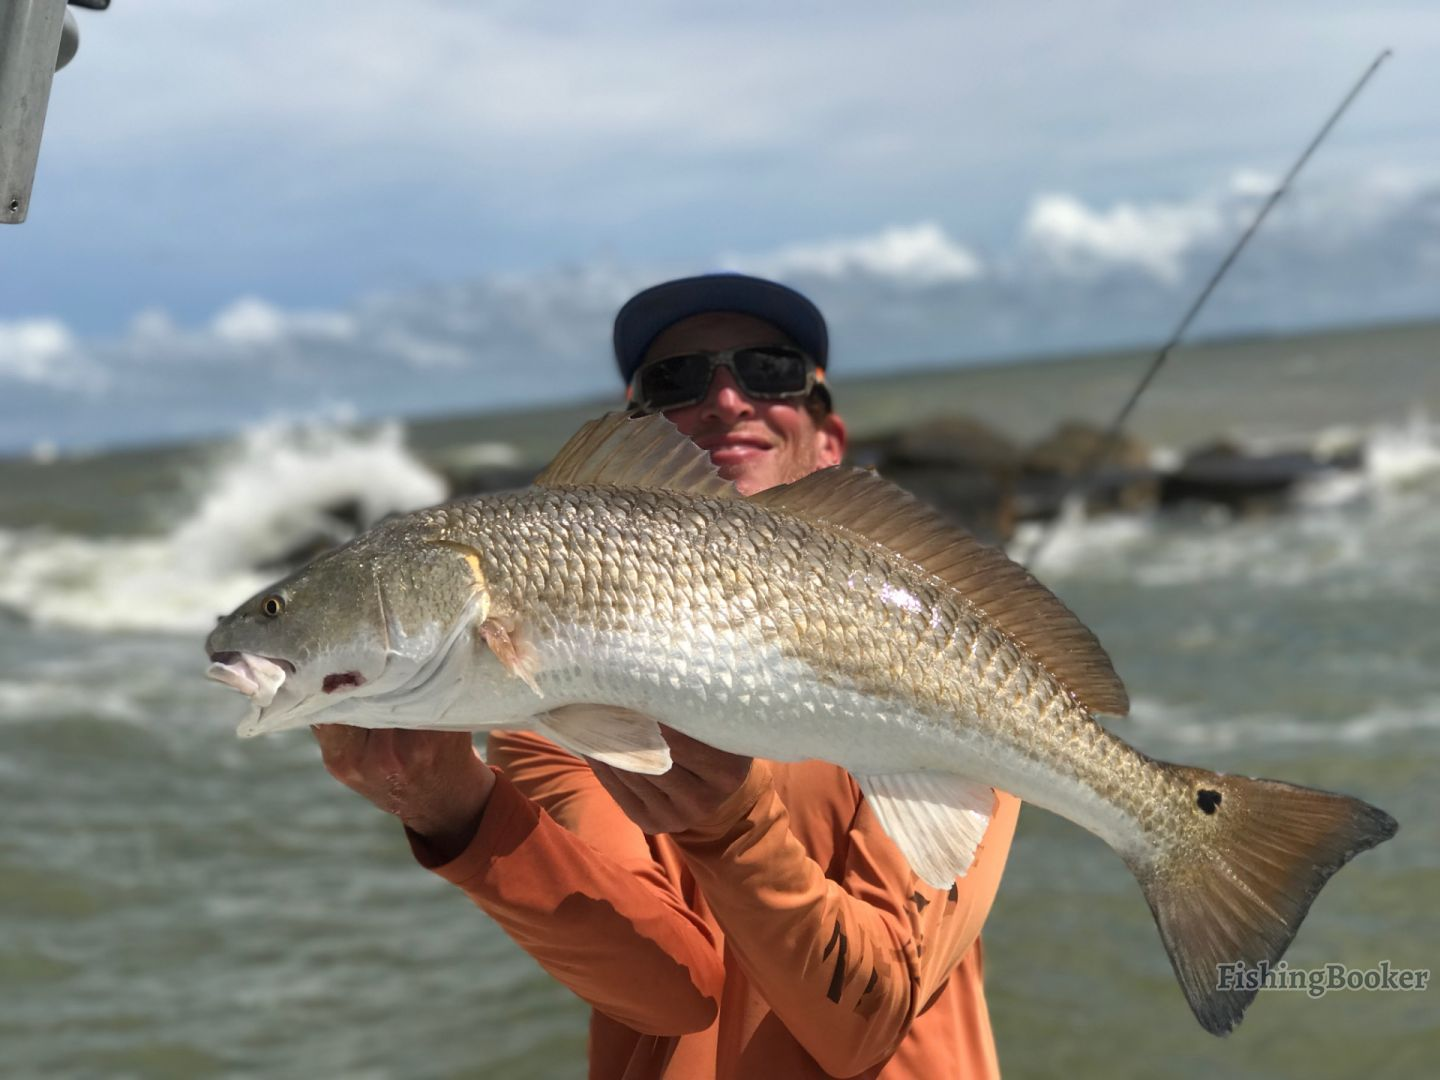 Angler holding a big Redfish he caught in Galveston.